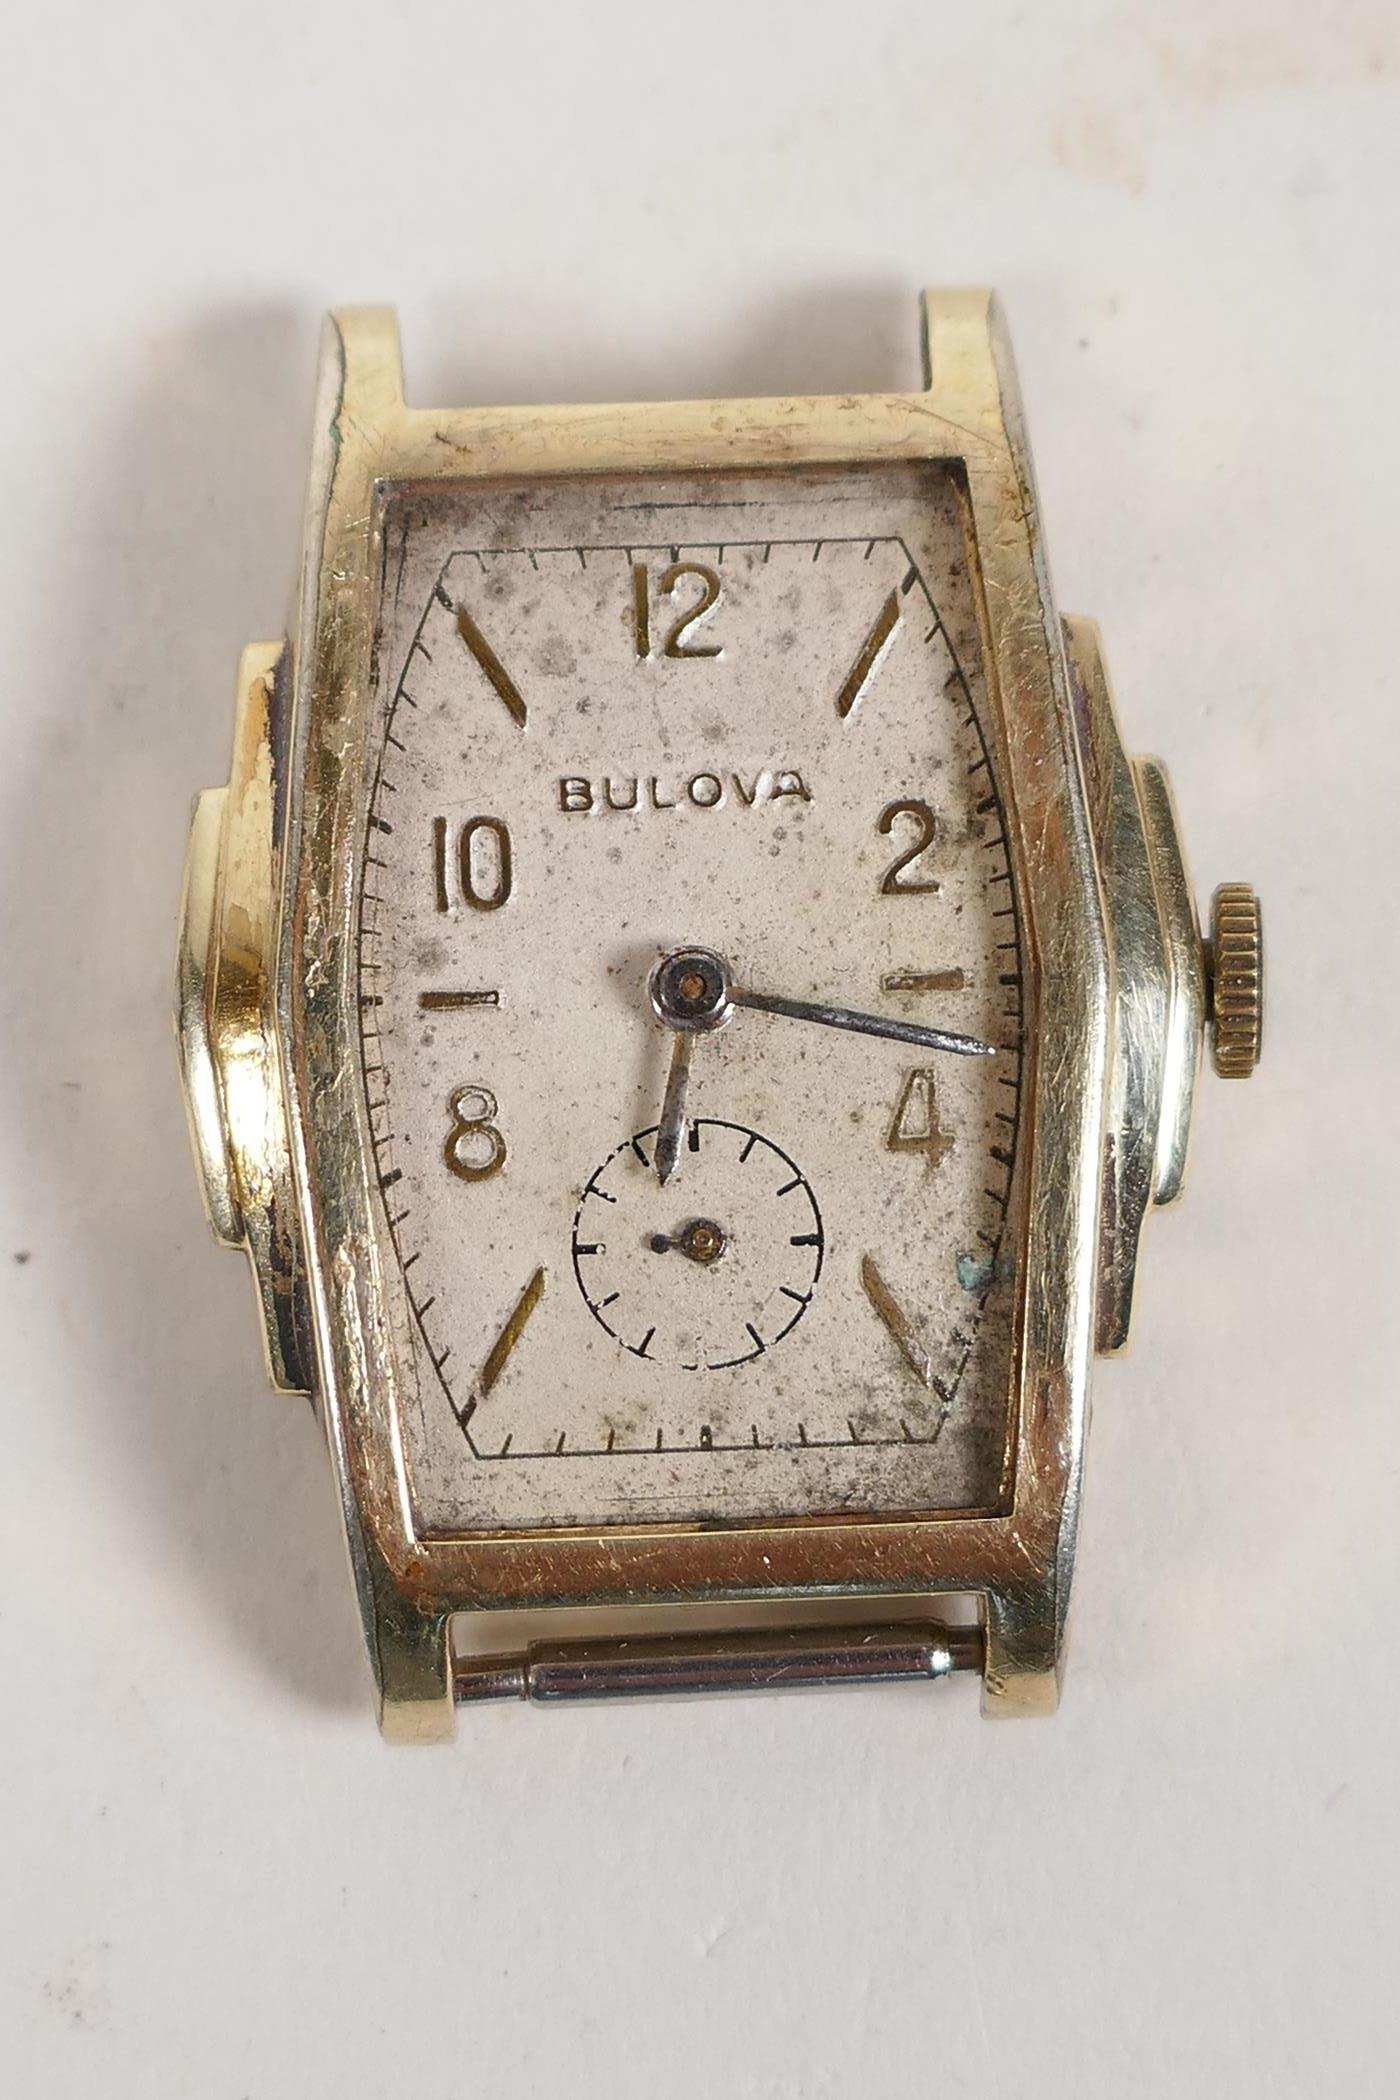 A vintage gilt plated Bulova wrist watch with a small subsidiary second hand dial, lacks strap, A/F,